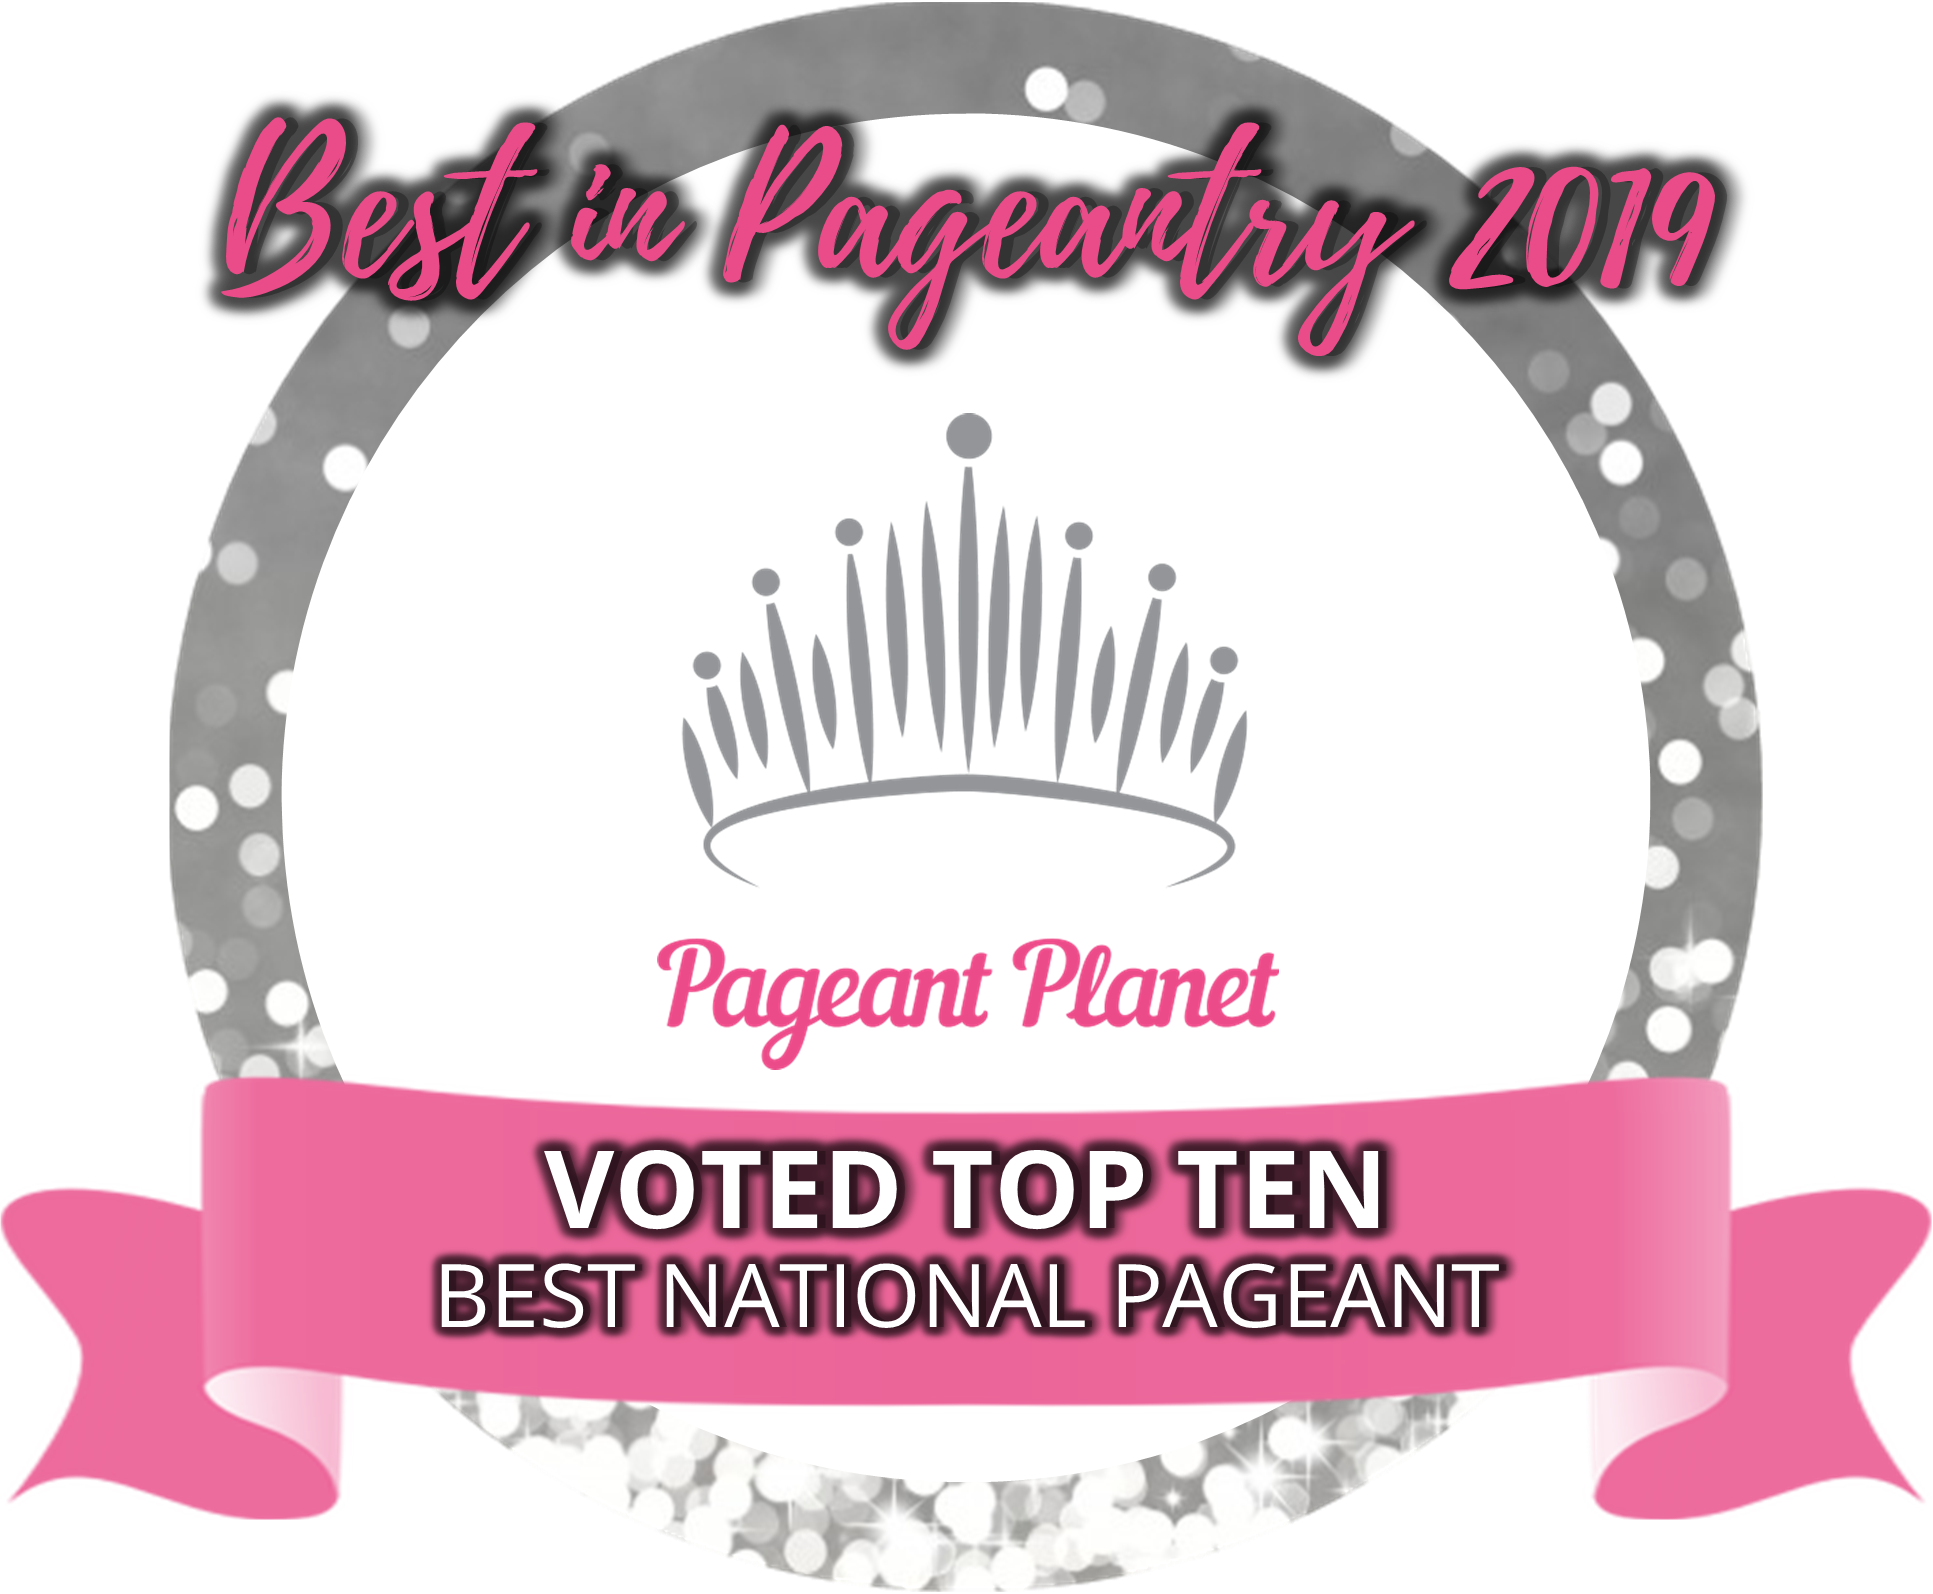 Top 10 National Pageants of 2019